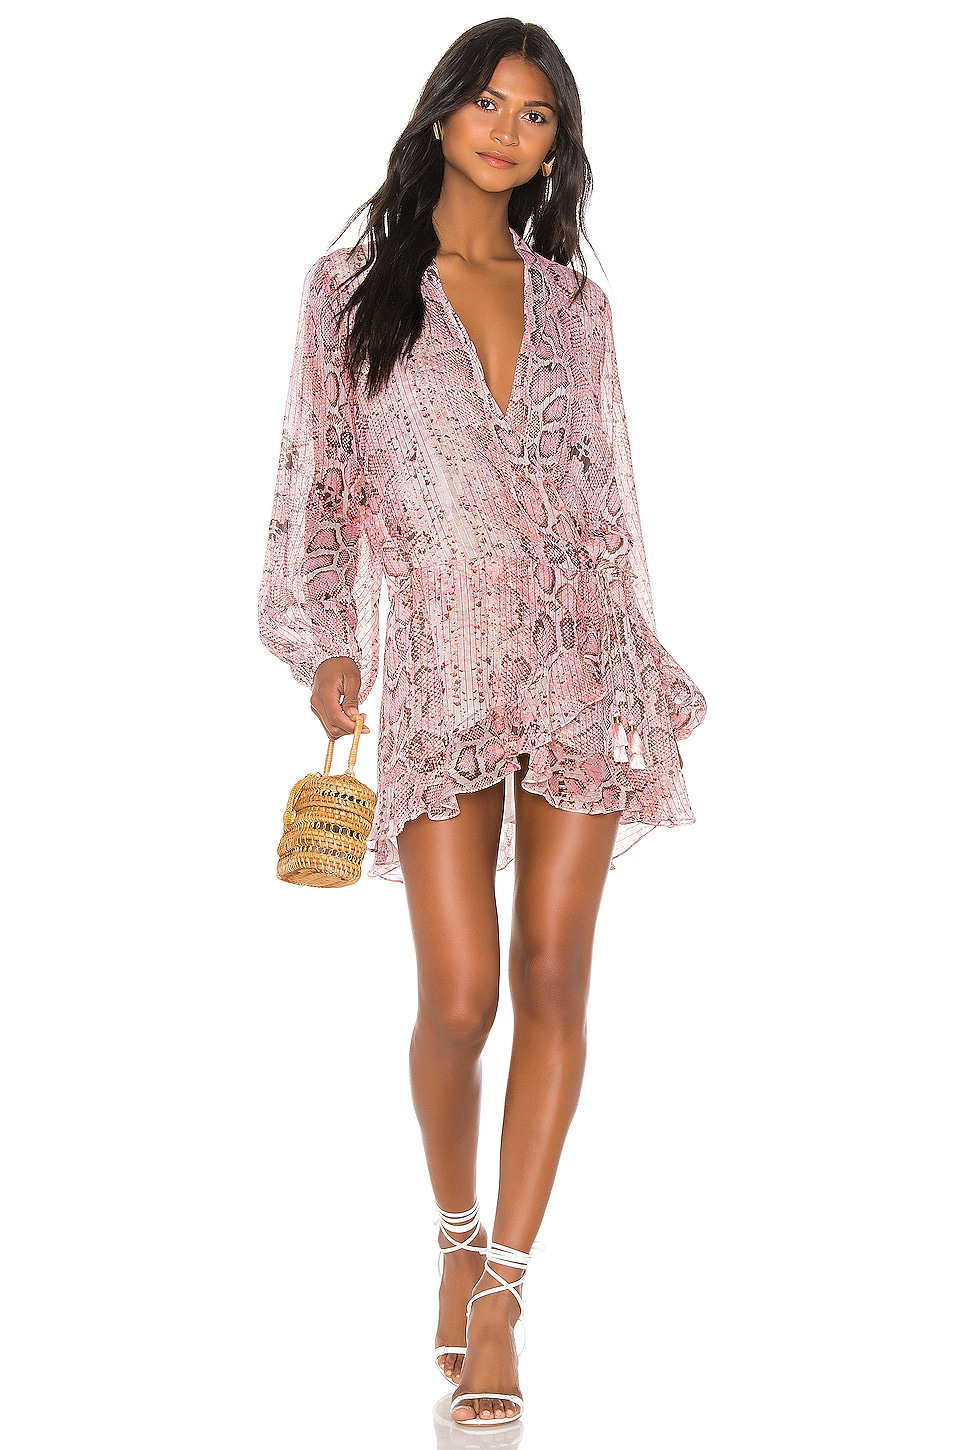 ROCOCO SAND x REVOLVE Lexi Dress in Pink Snake